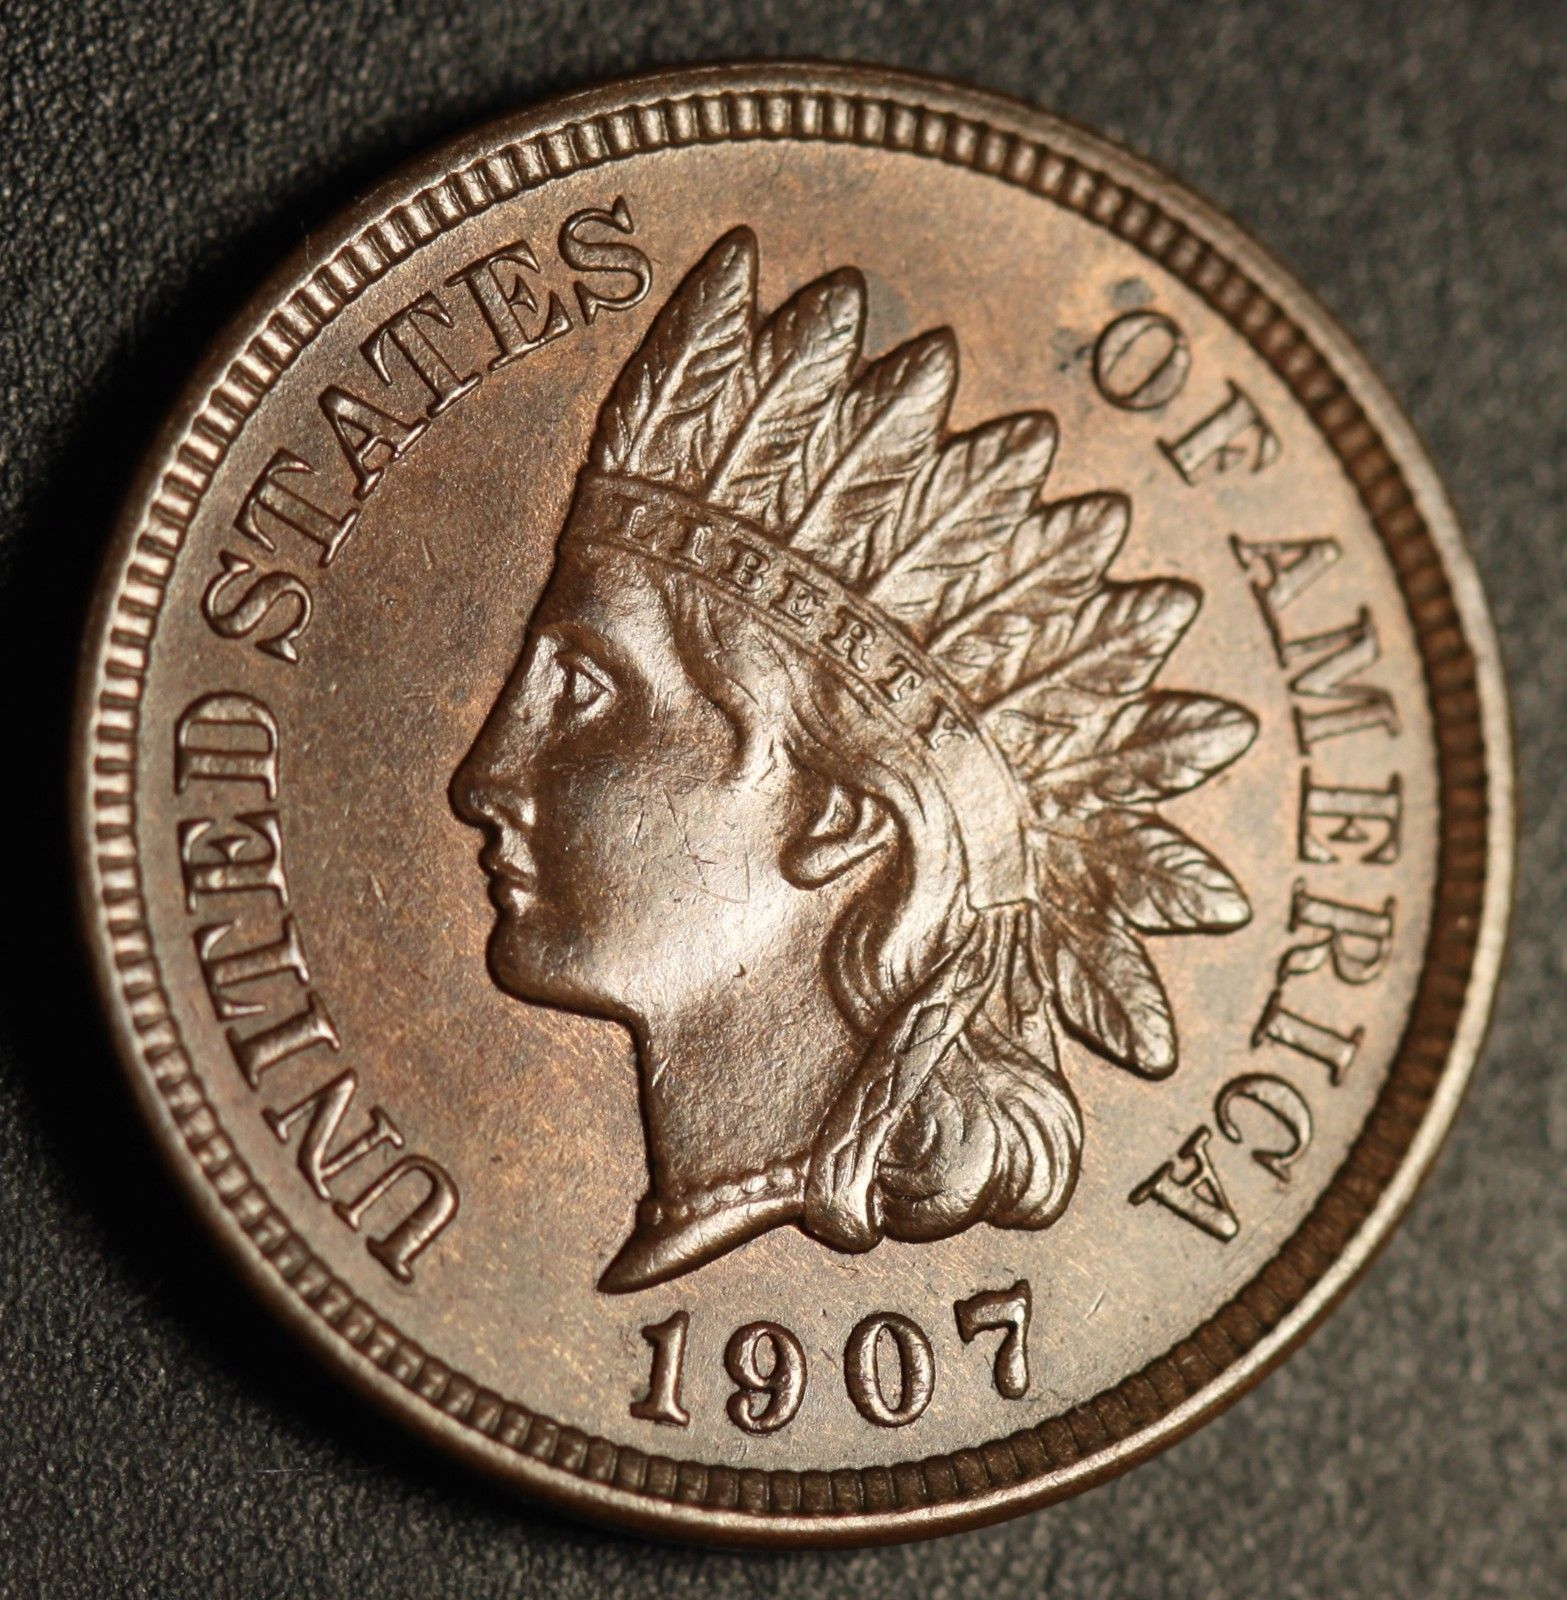 1907 RPD-055 - Indian Head Penny - Photo by Ed Nathanson